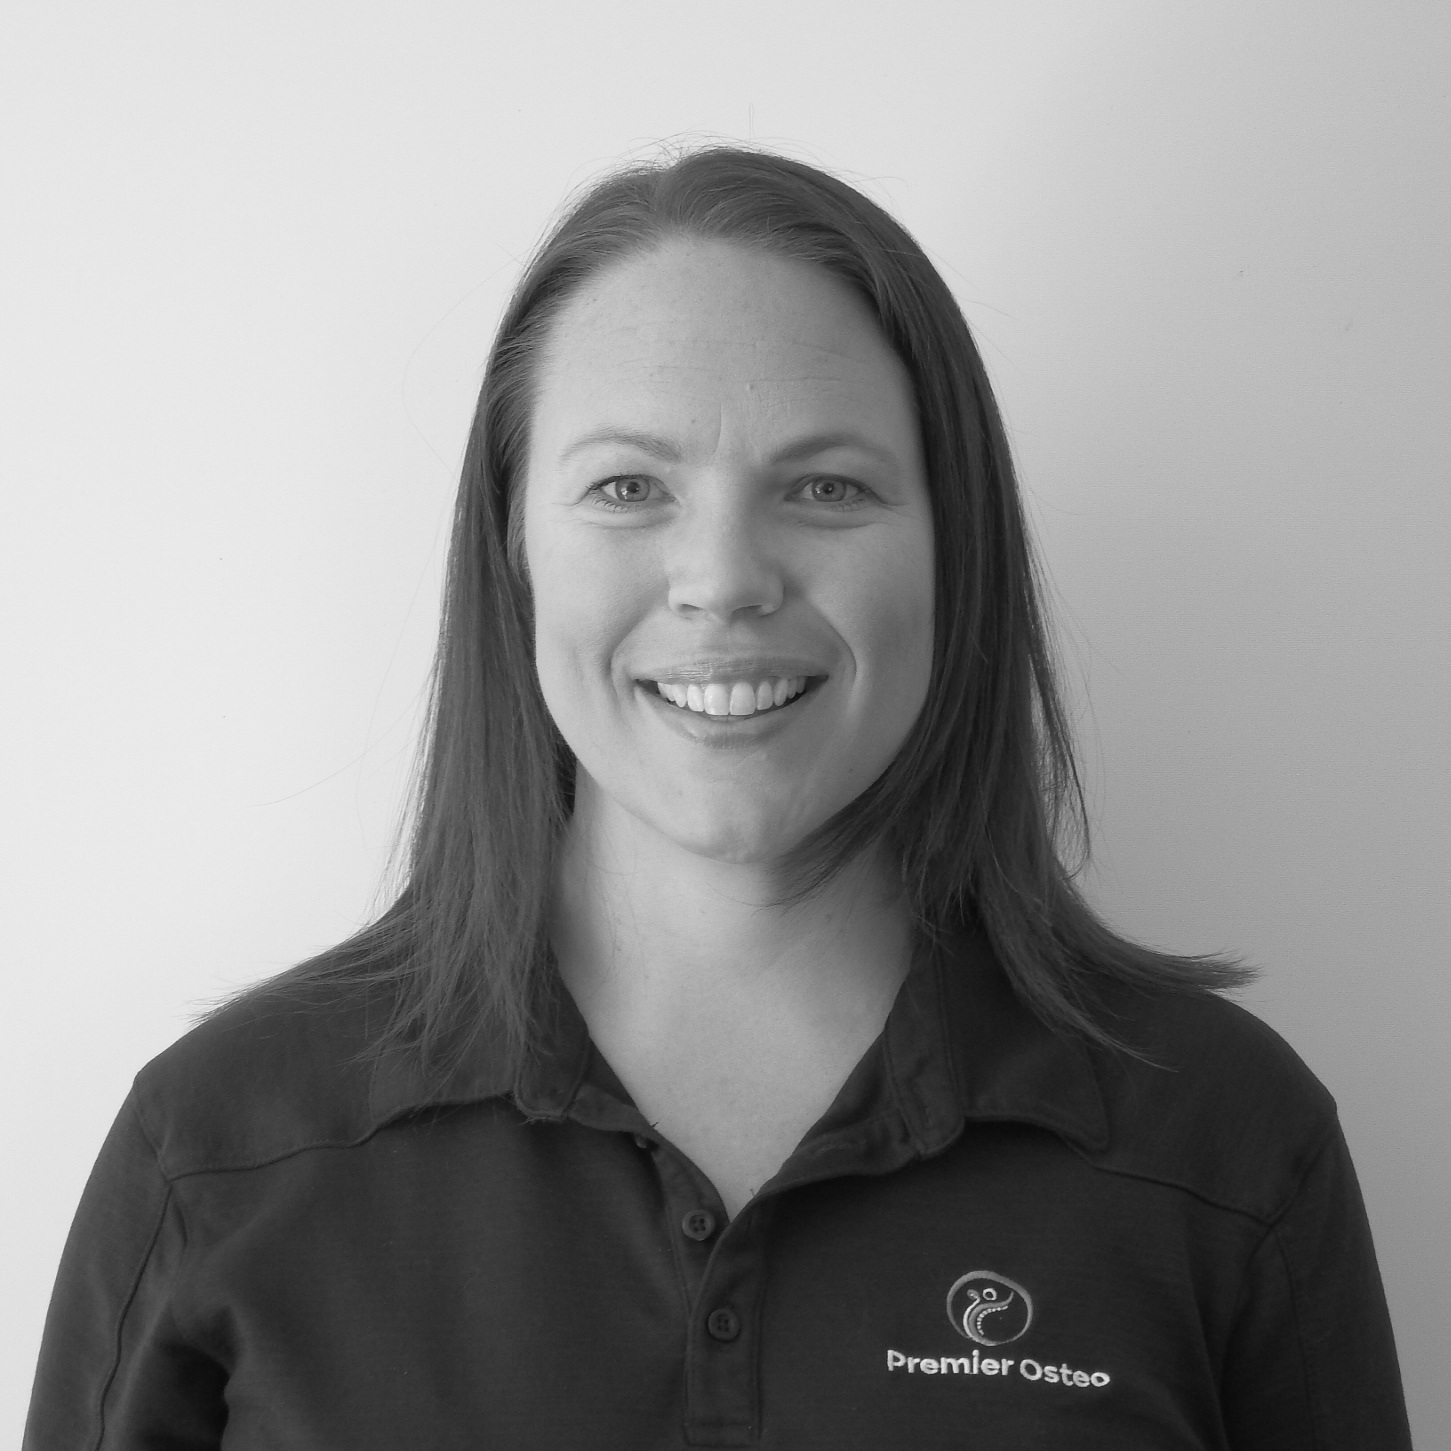 auckland-osteopath-functional-medicine-tonia-peachey-premier-osteo-north-shore